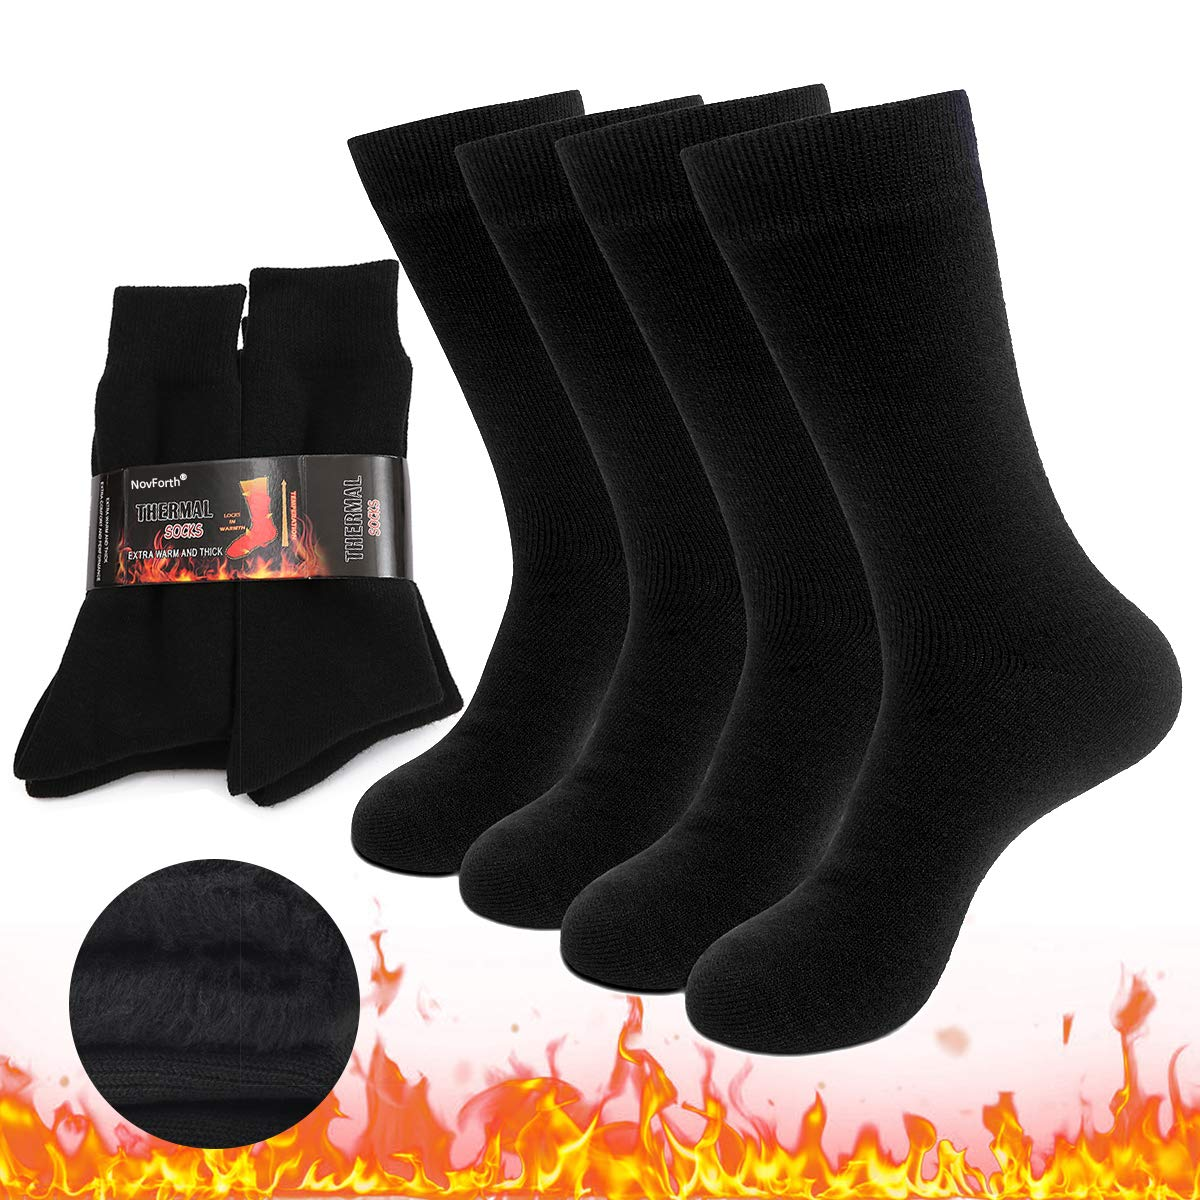 NovForth 2//3//4 Pairs Thick Thermal Socks Insulated Heated Heavy Warm Socks For Winter Cold Weather